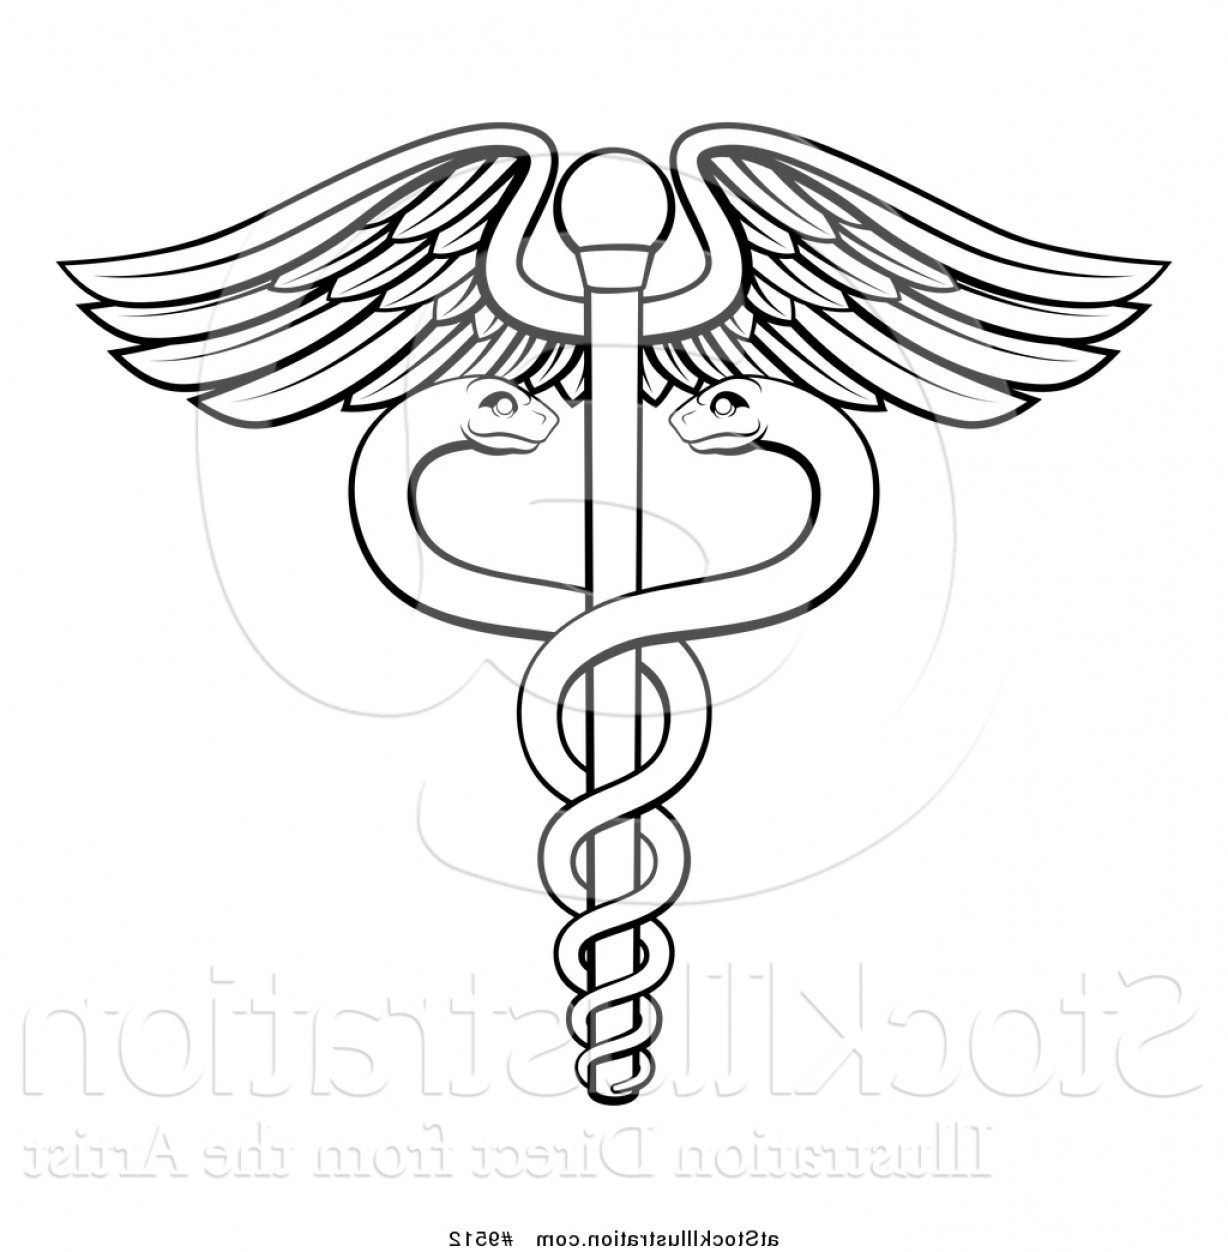 Vector Hi Res Black And White Wing: Vector Illustration Of A Black And White Lineart Medical Caduceus With Snakes On A Winged Rod By Atstockillustration